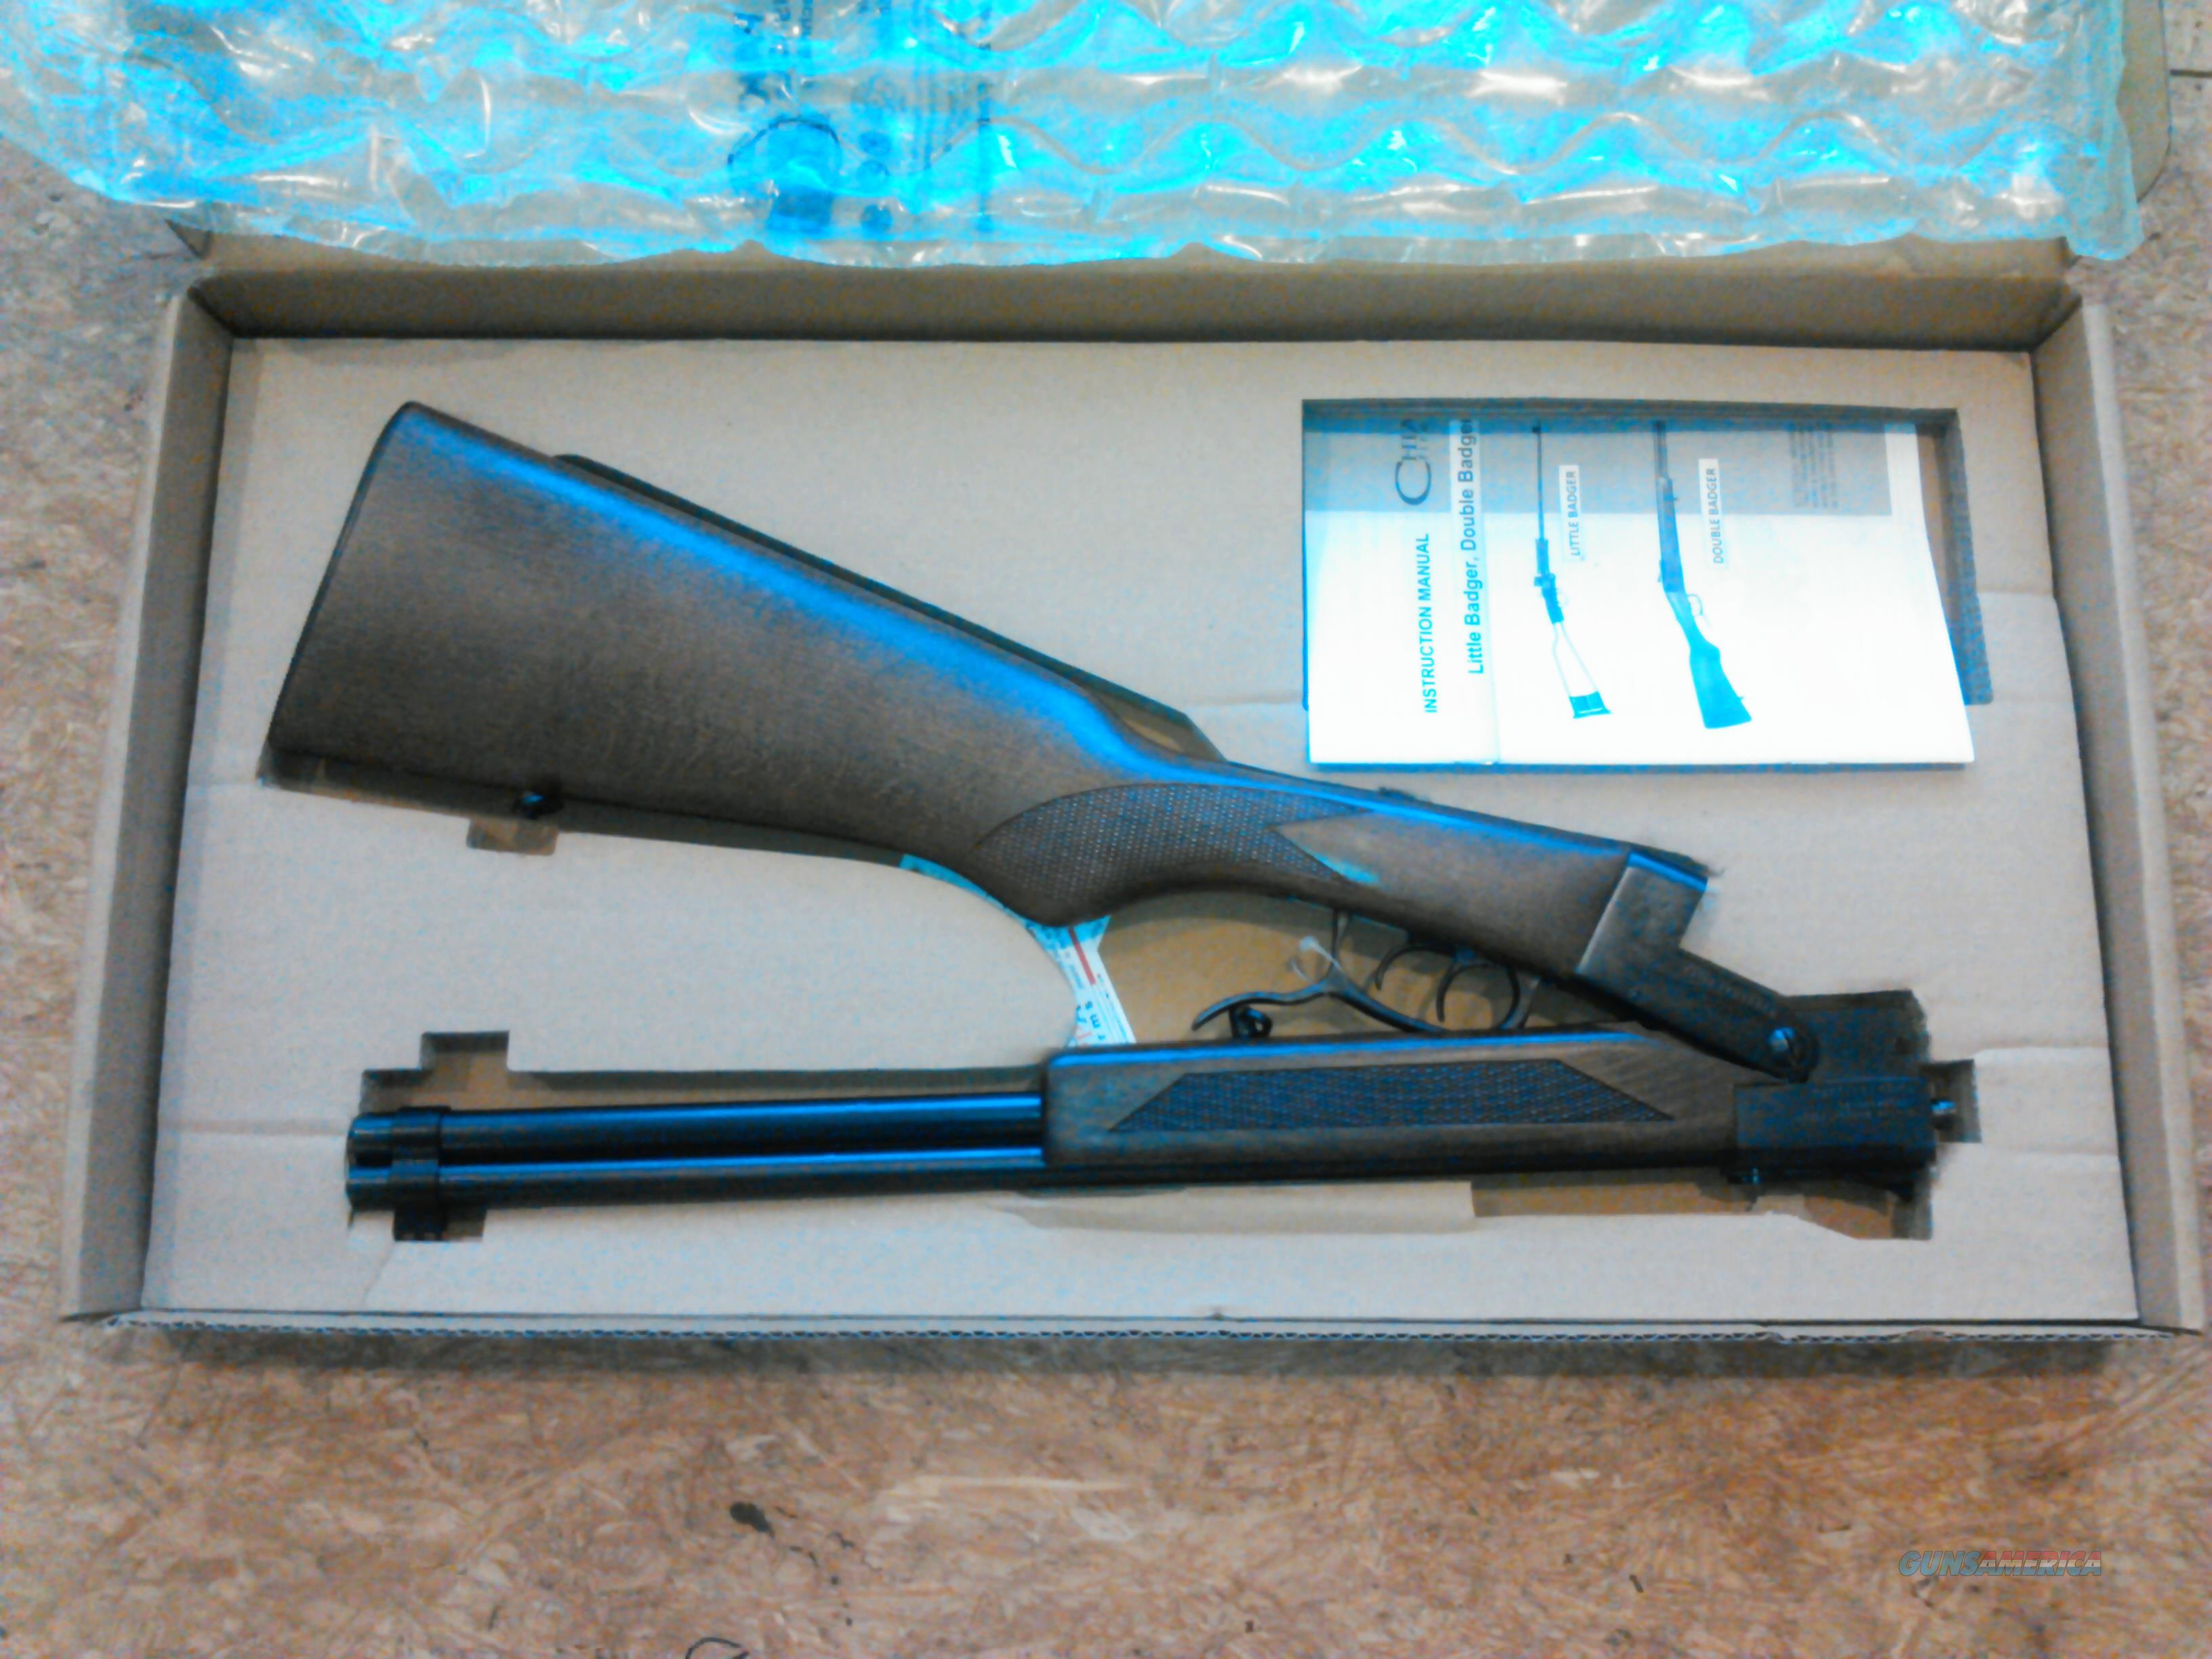 "CHIAPPA DOUBLE BADGER O/U  22LR/410GA  19""BL  NIB, FREE SHIPPING NO CC FEE  Guns > Rifles > Chiappa / Armi Sport Rifles > .22 Cal Rifles"